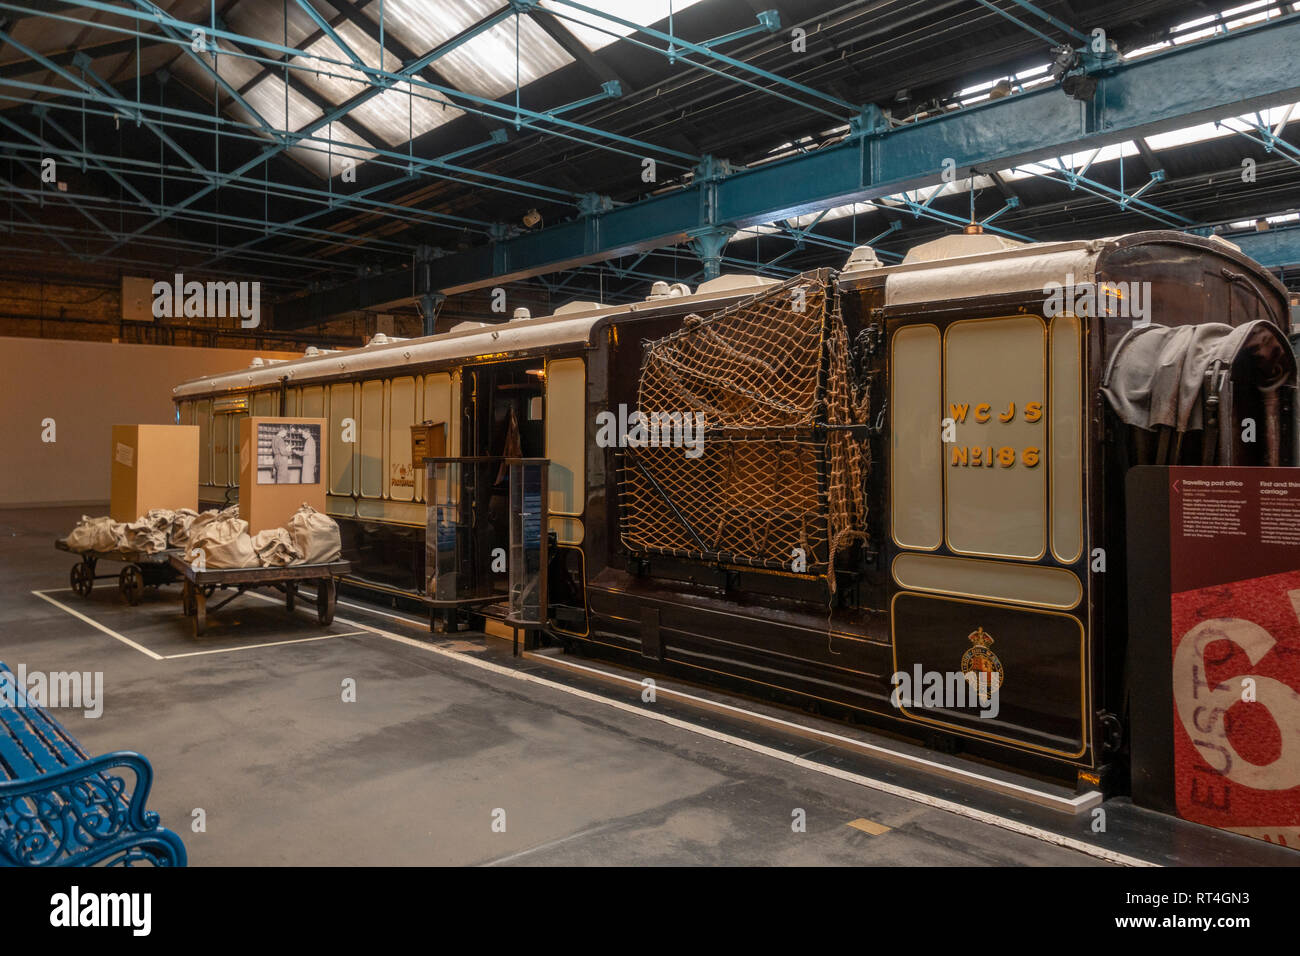 Travelling Post Office (TPO) carriage (1880's-1930's) on display in the National Railway Museum, York, UK. Stock Photo